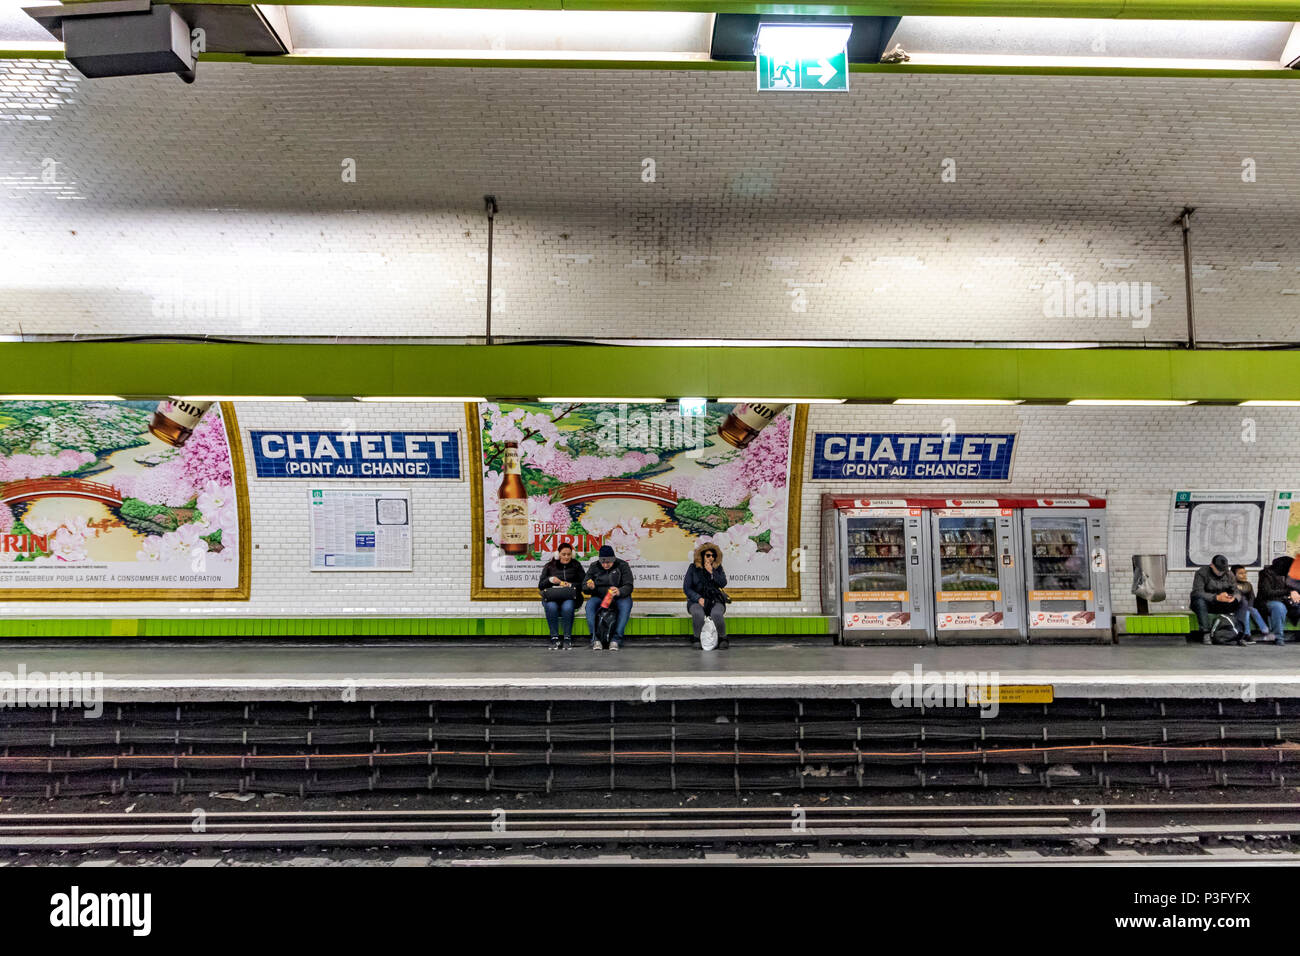 People sitting waiting for a train on Châtelet Pont Au Change station on The Paris Metro ,France - Stock Image